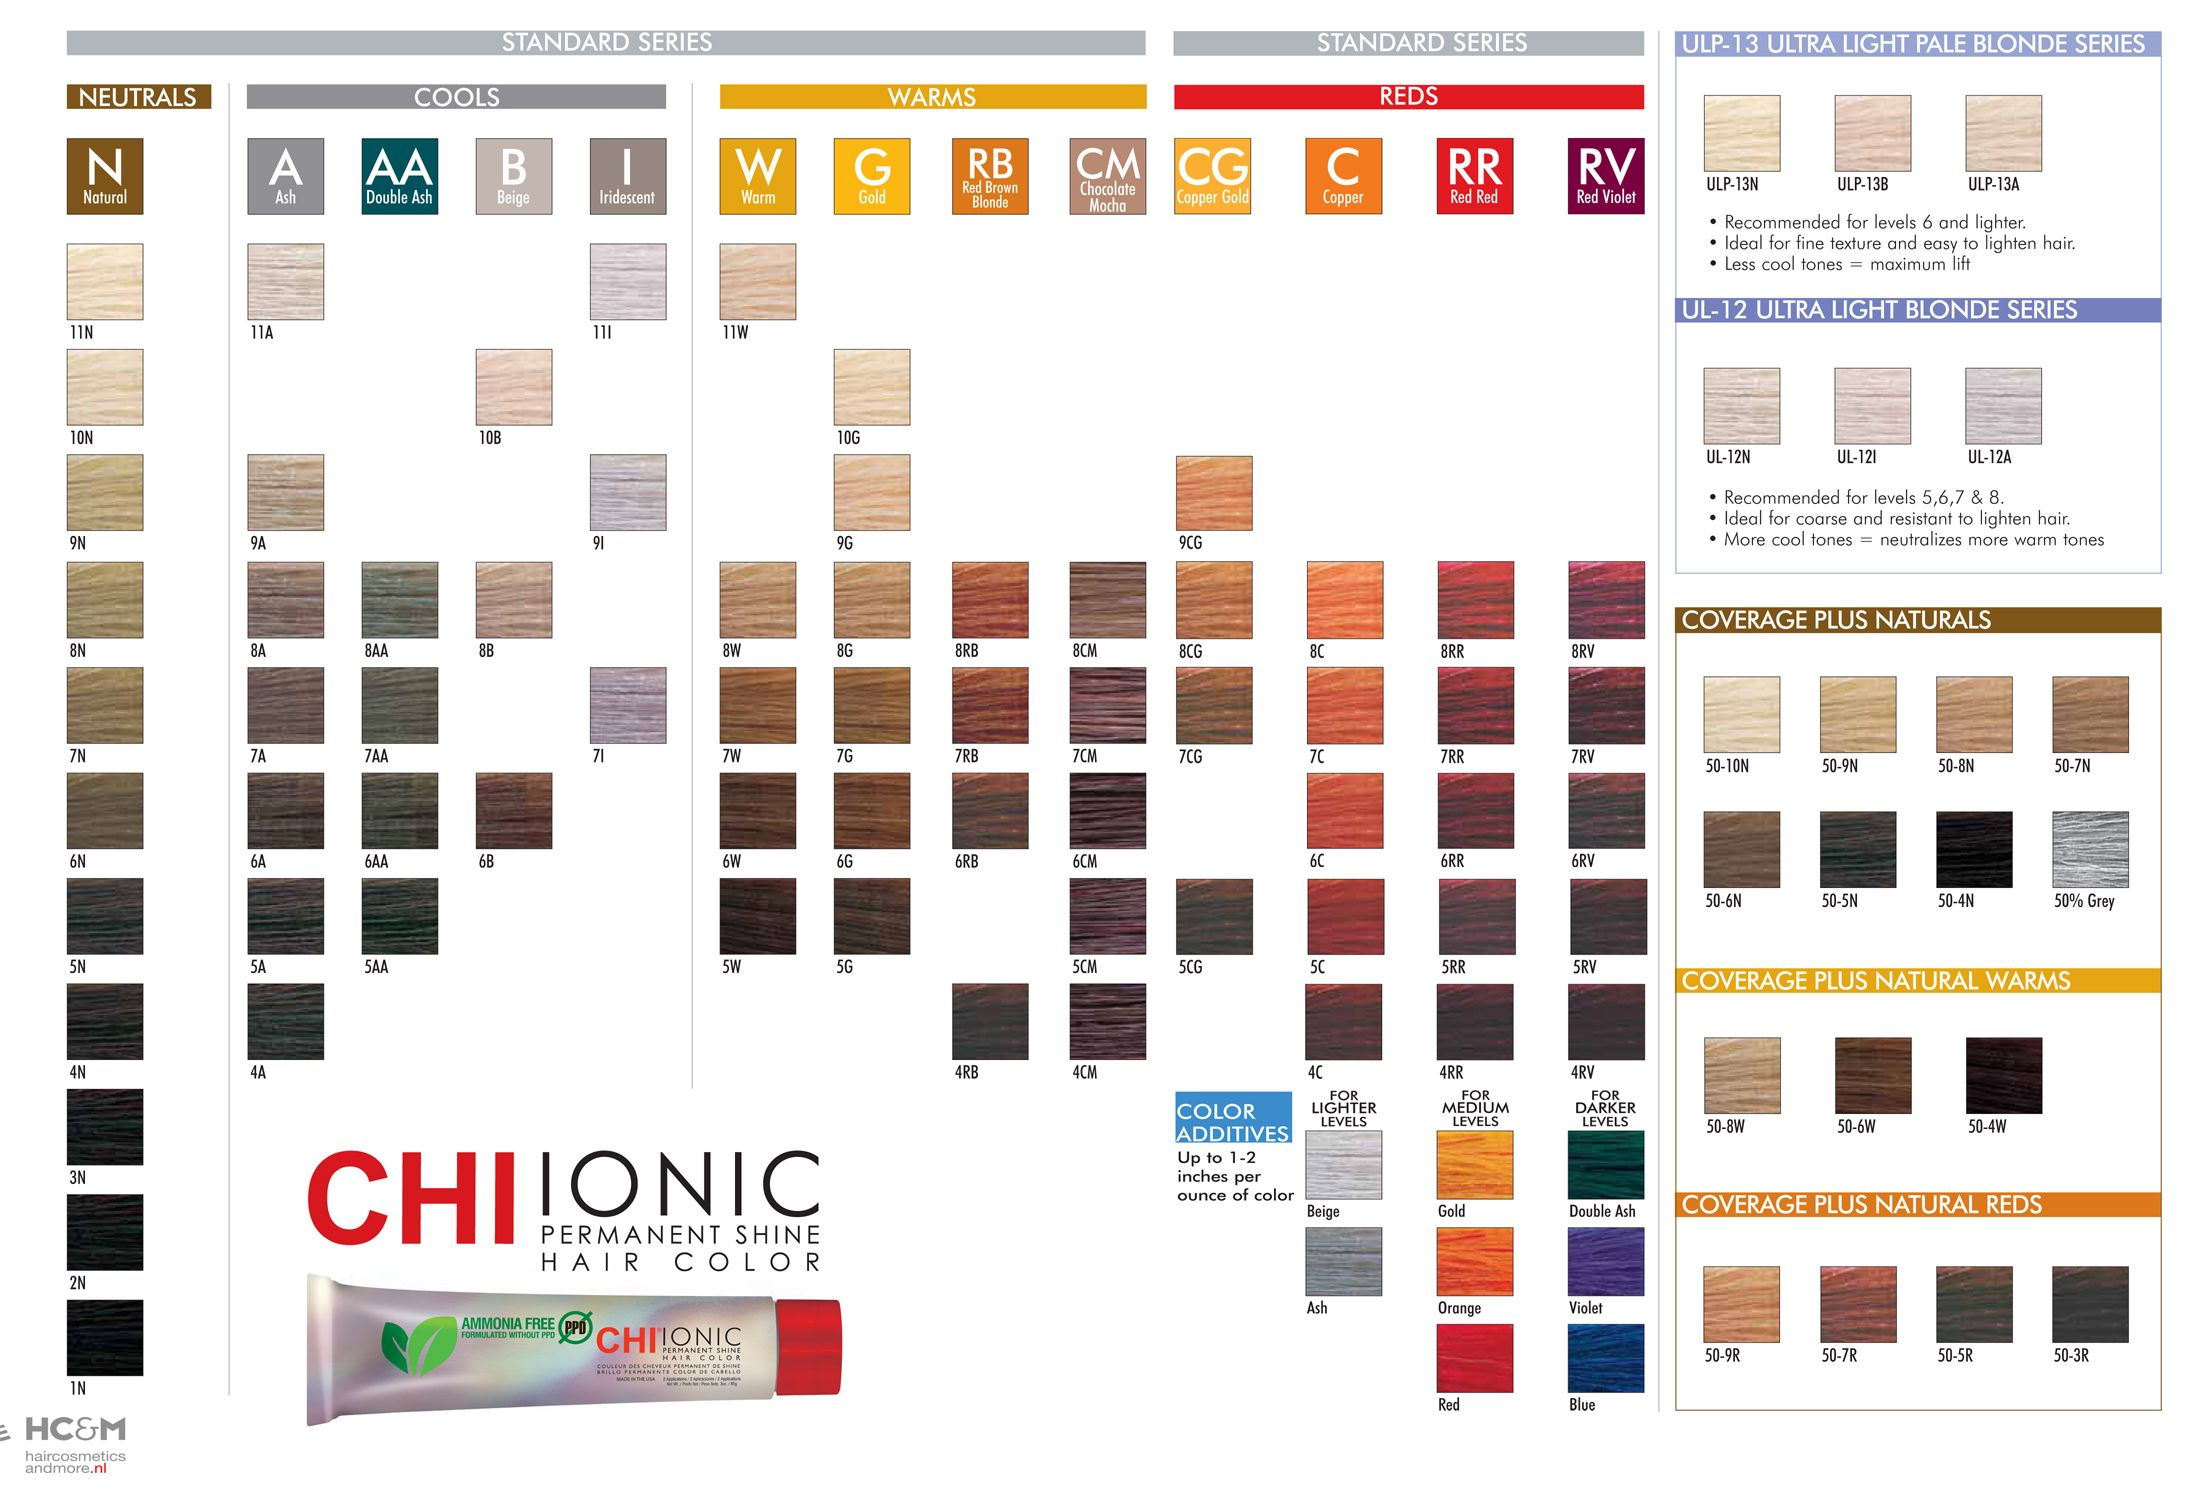 Chi ionic permanent hair color shade chart hair i love chi ionic permanent hair color shade chart nvjuhfo Images